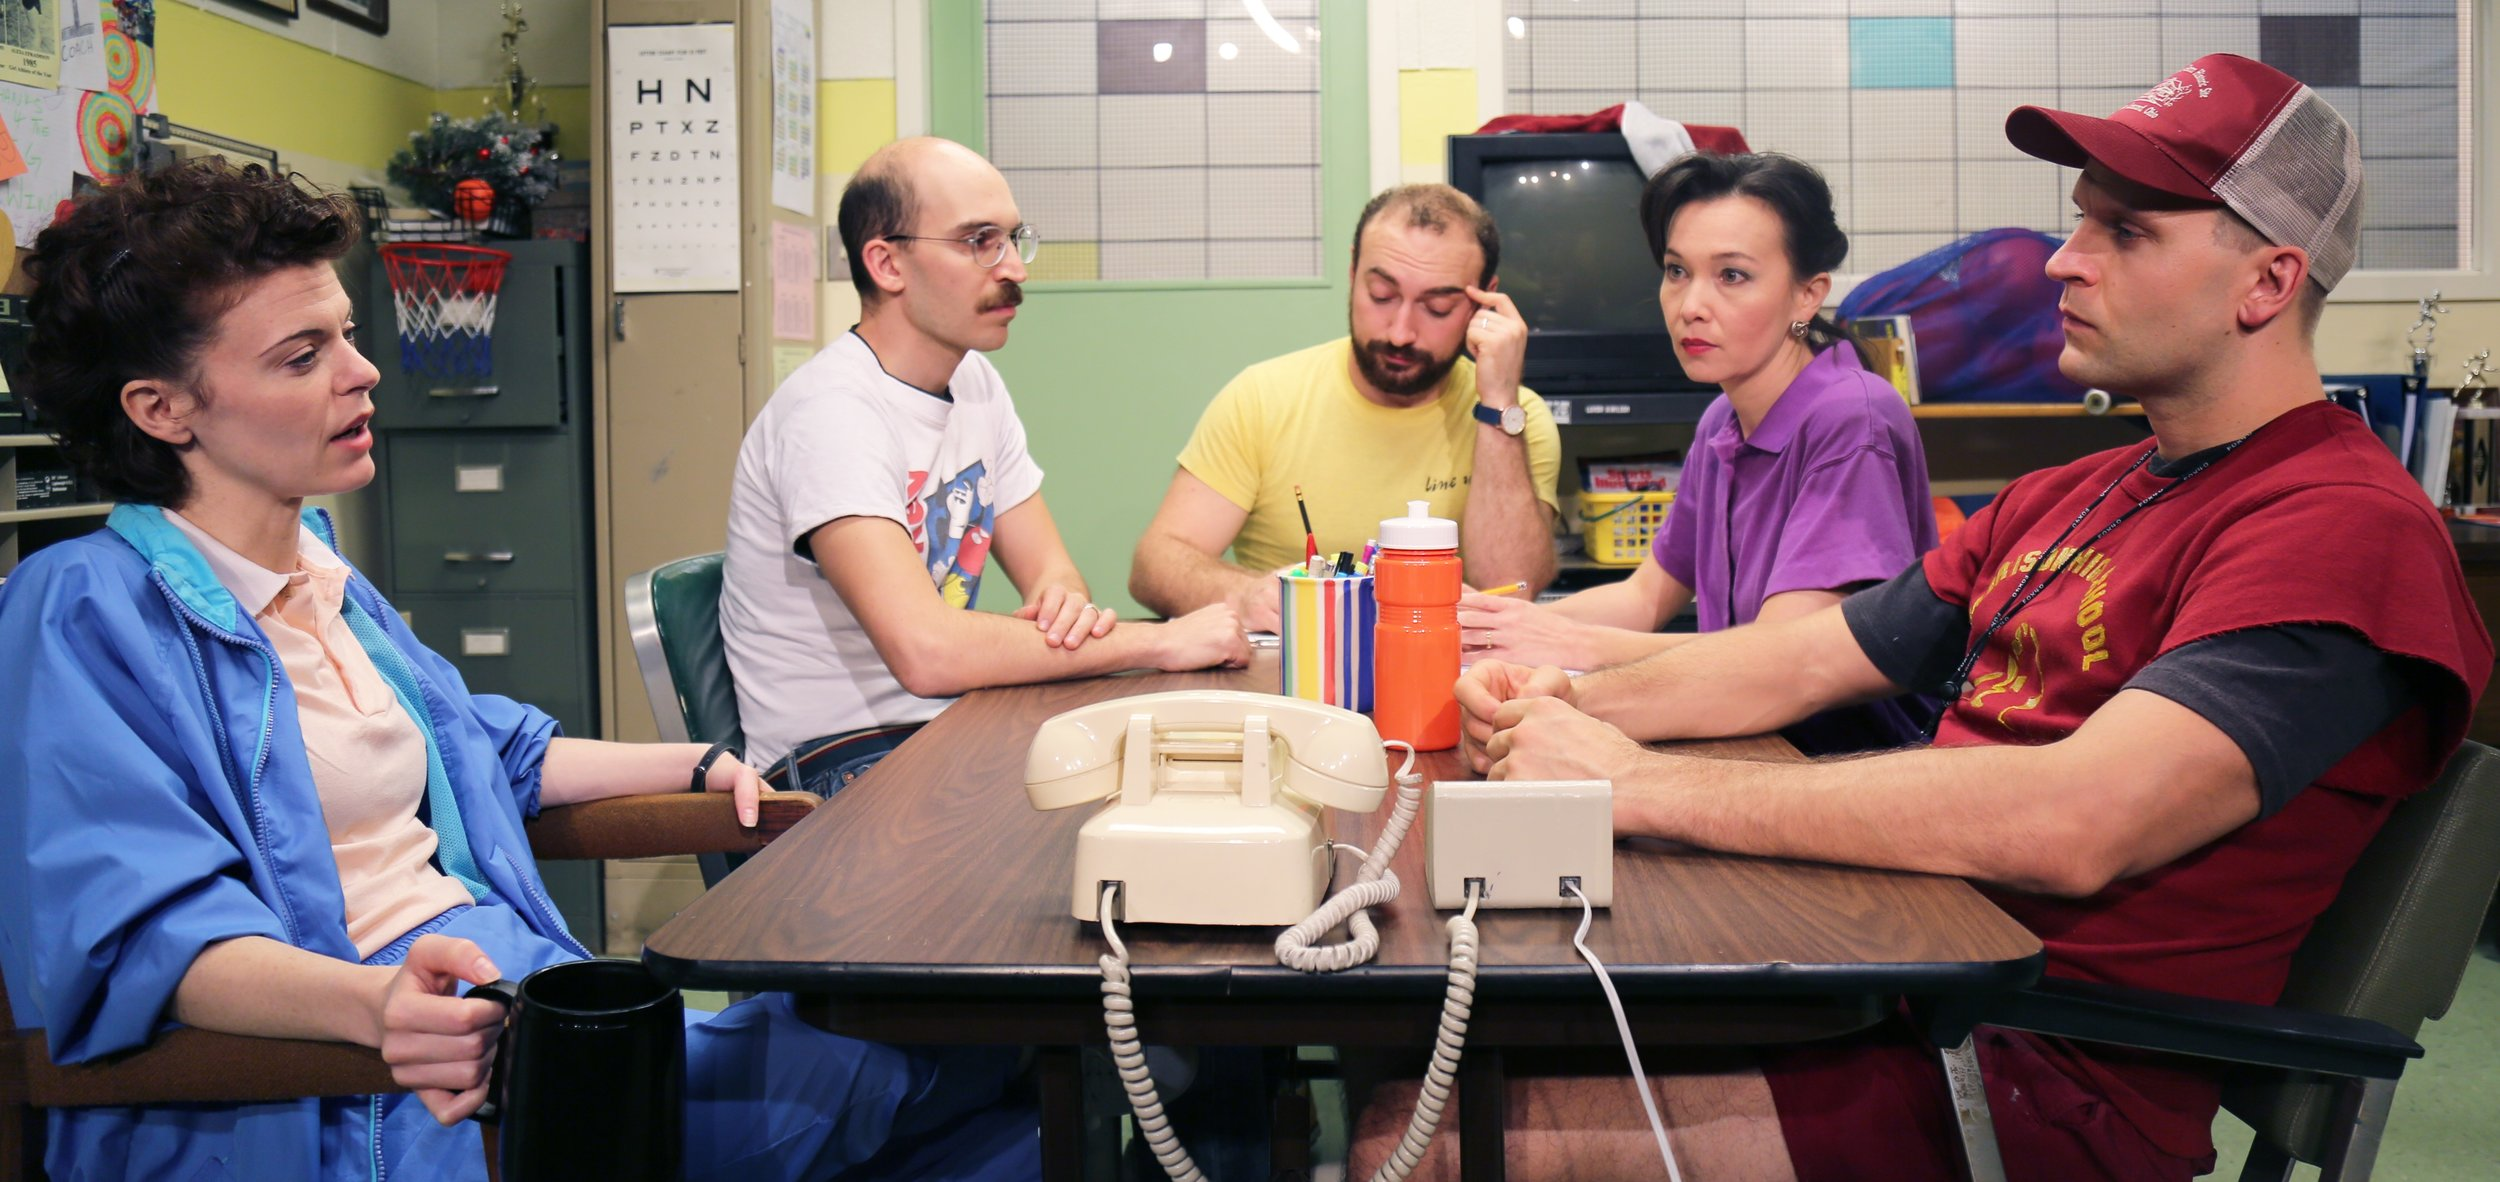 From left: Stephanie Wright Thompson as Sandra, Bovino, Michael Dalto as David, Yen and Curnutte. Photographs by The Mad Ones.